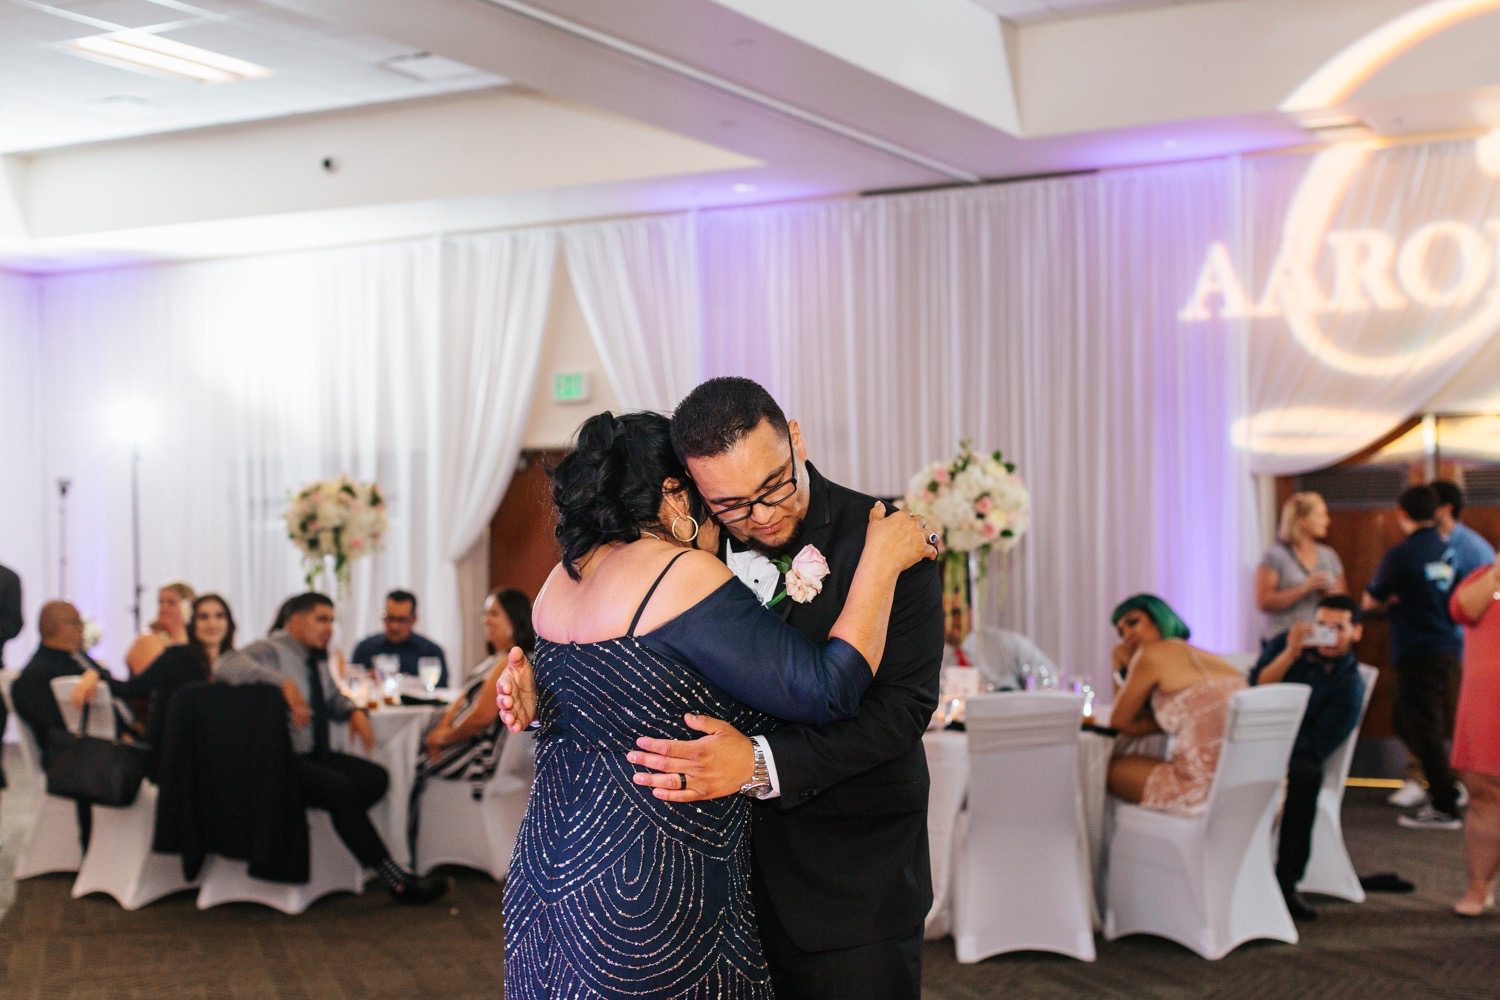 Wedding Reception - Mother and Son Dance - https://brittneyhannonphotography.com